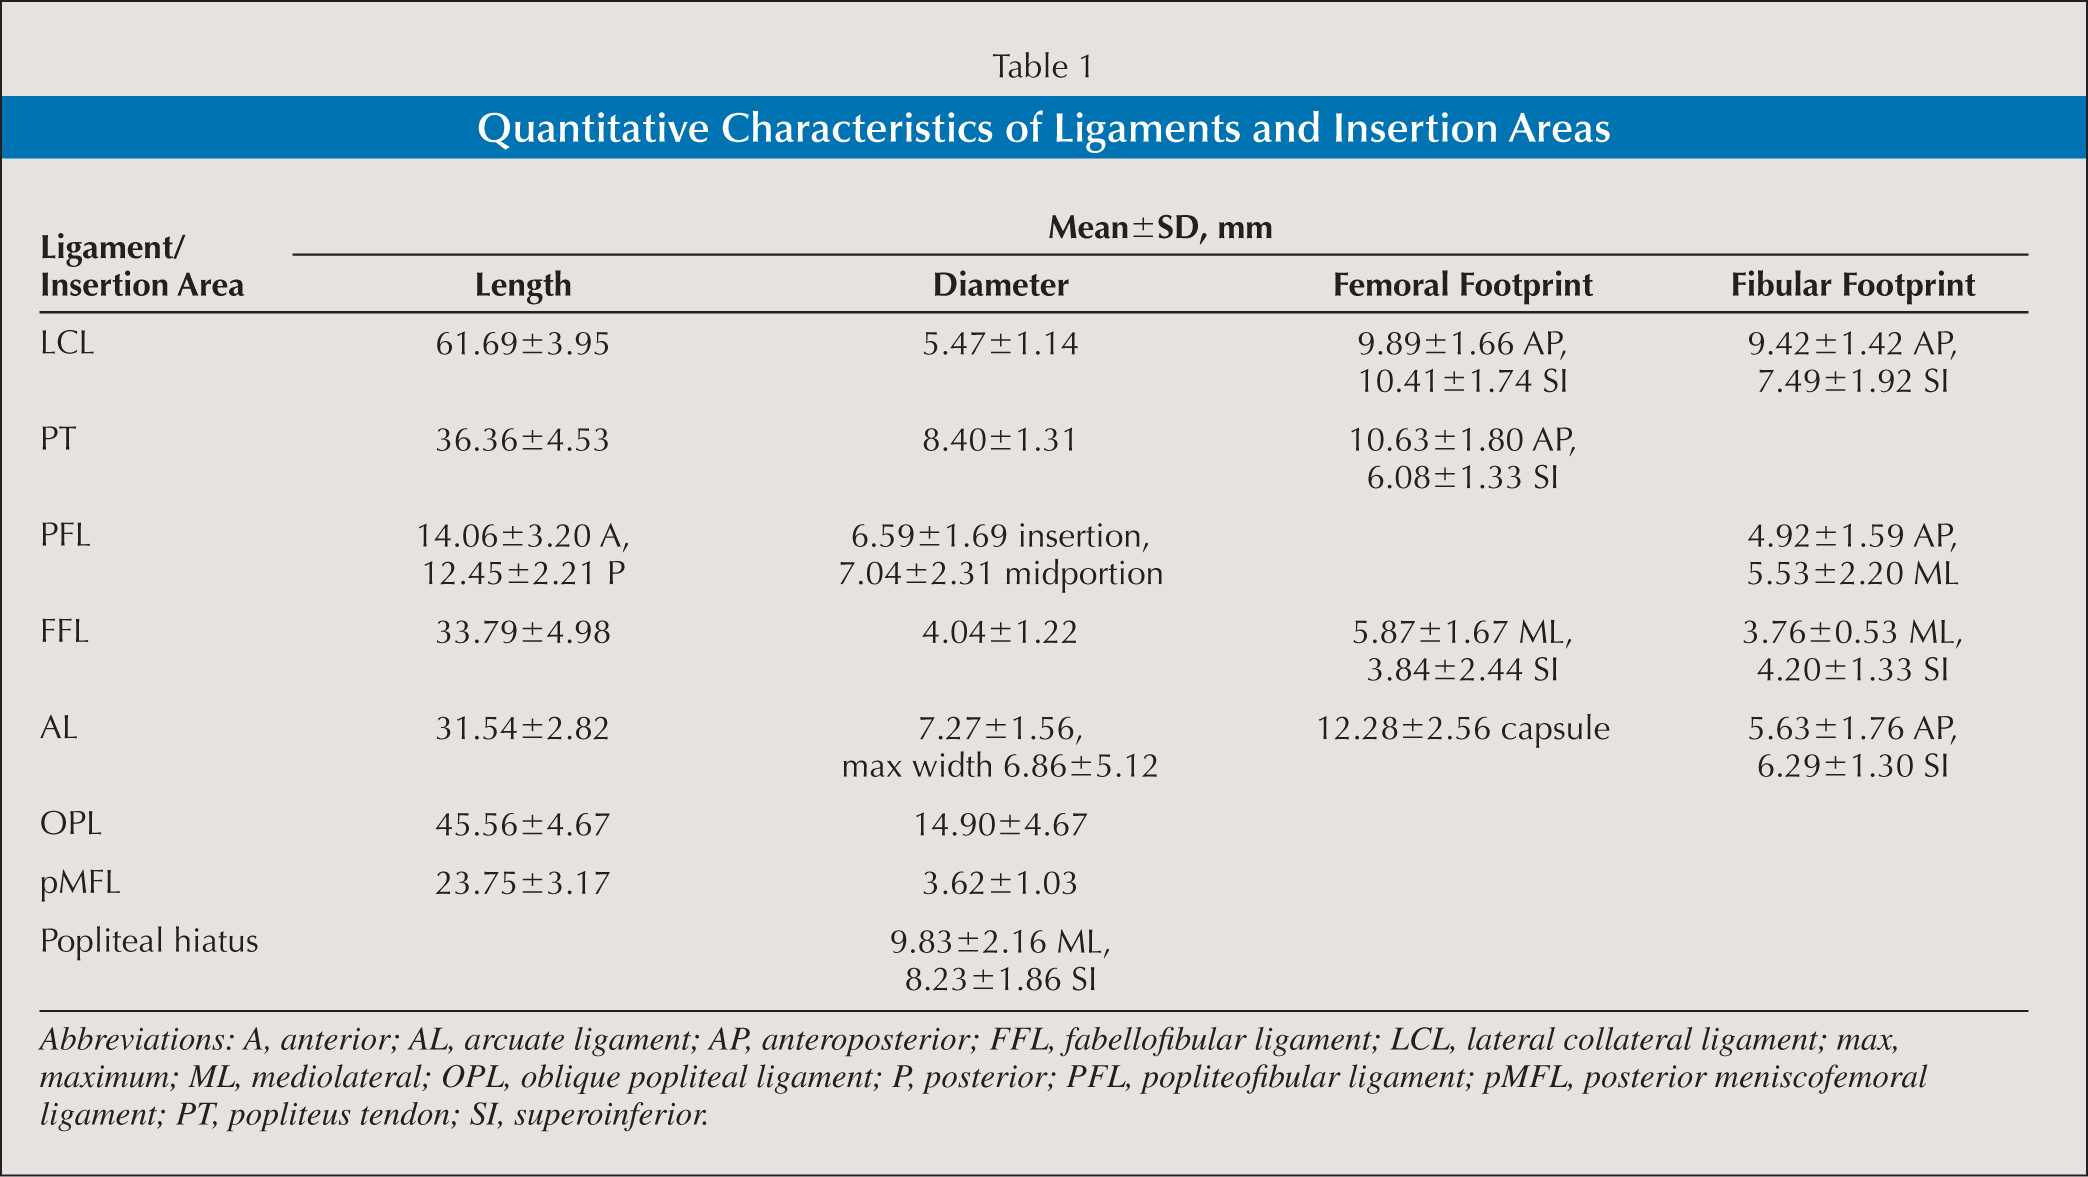 Quantitative Characteristics of Ligaments and Insertion Areas